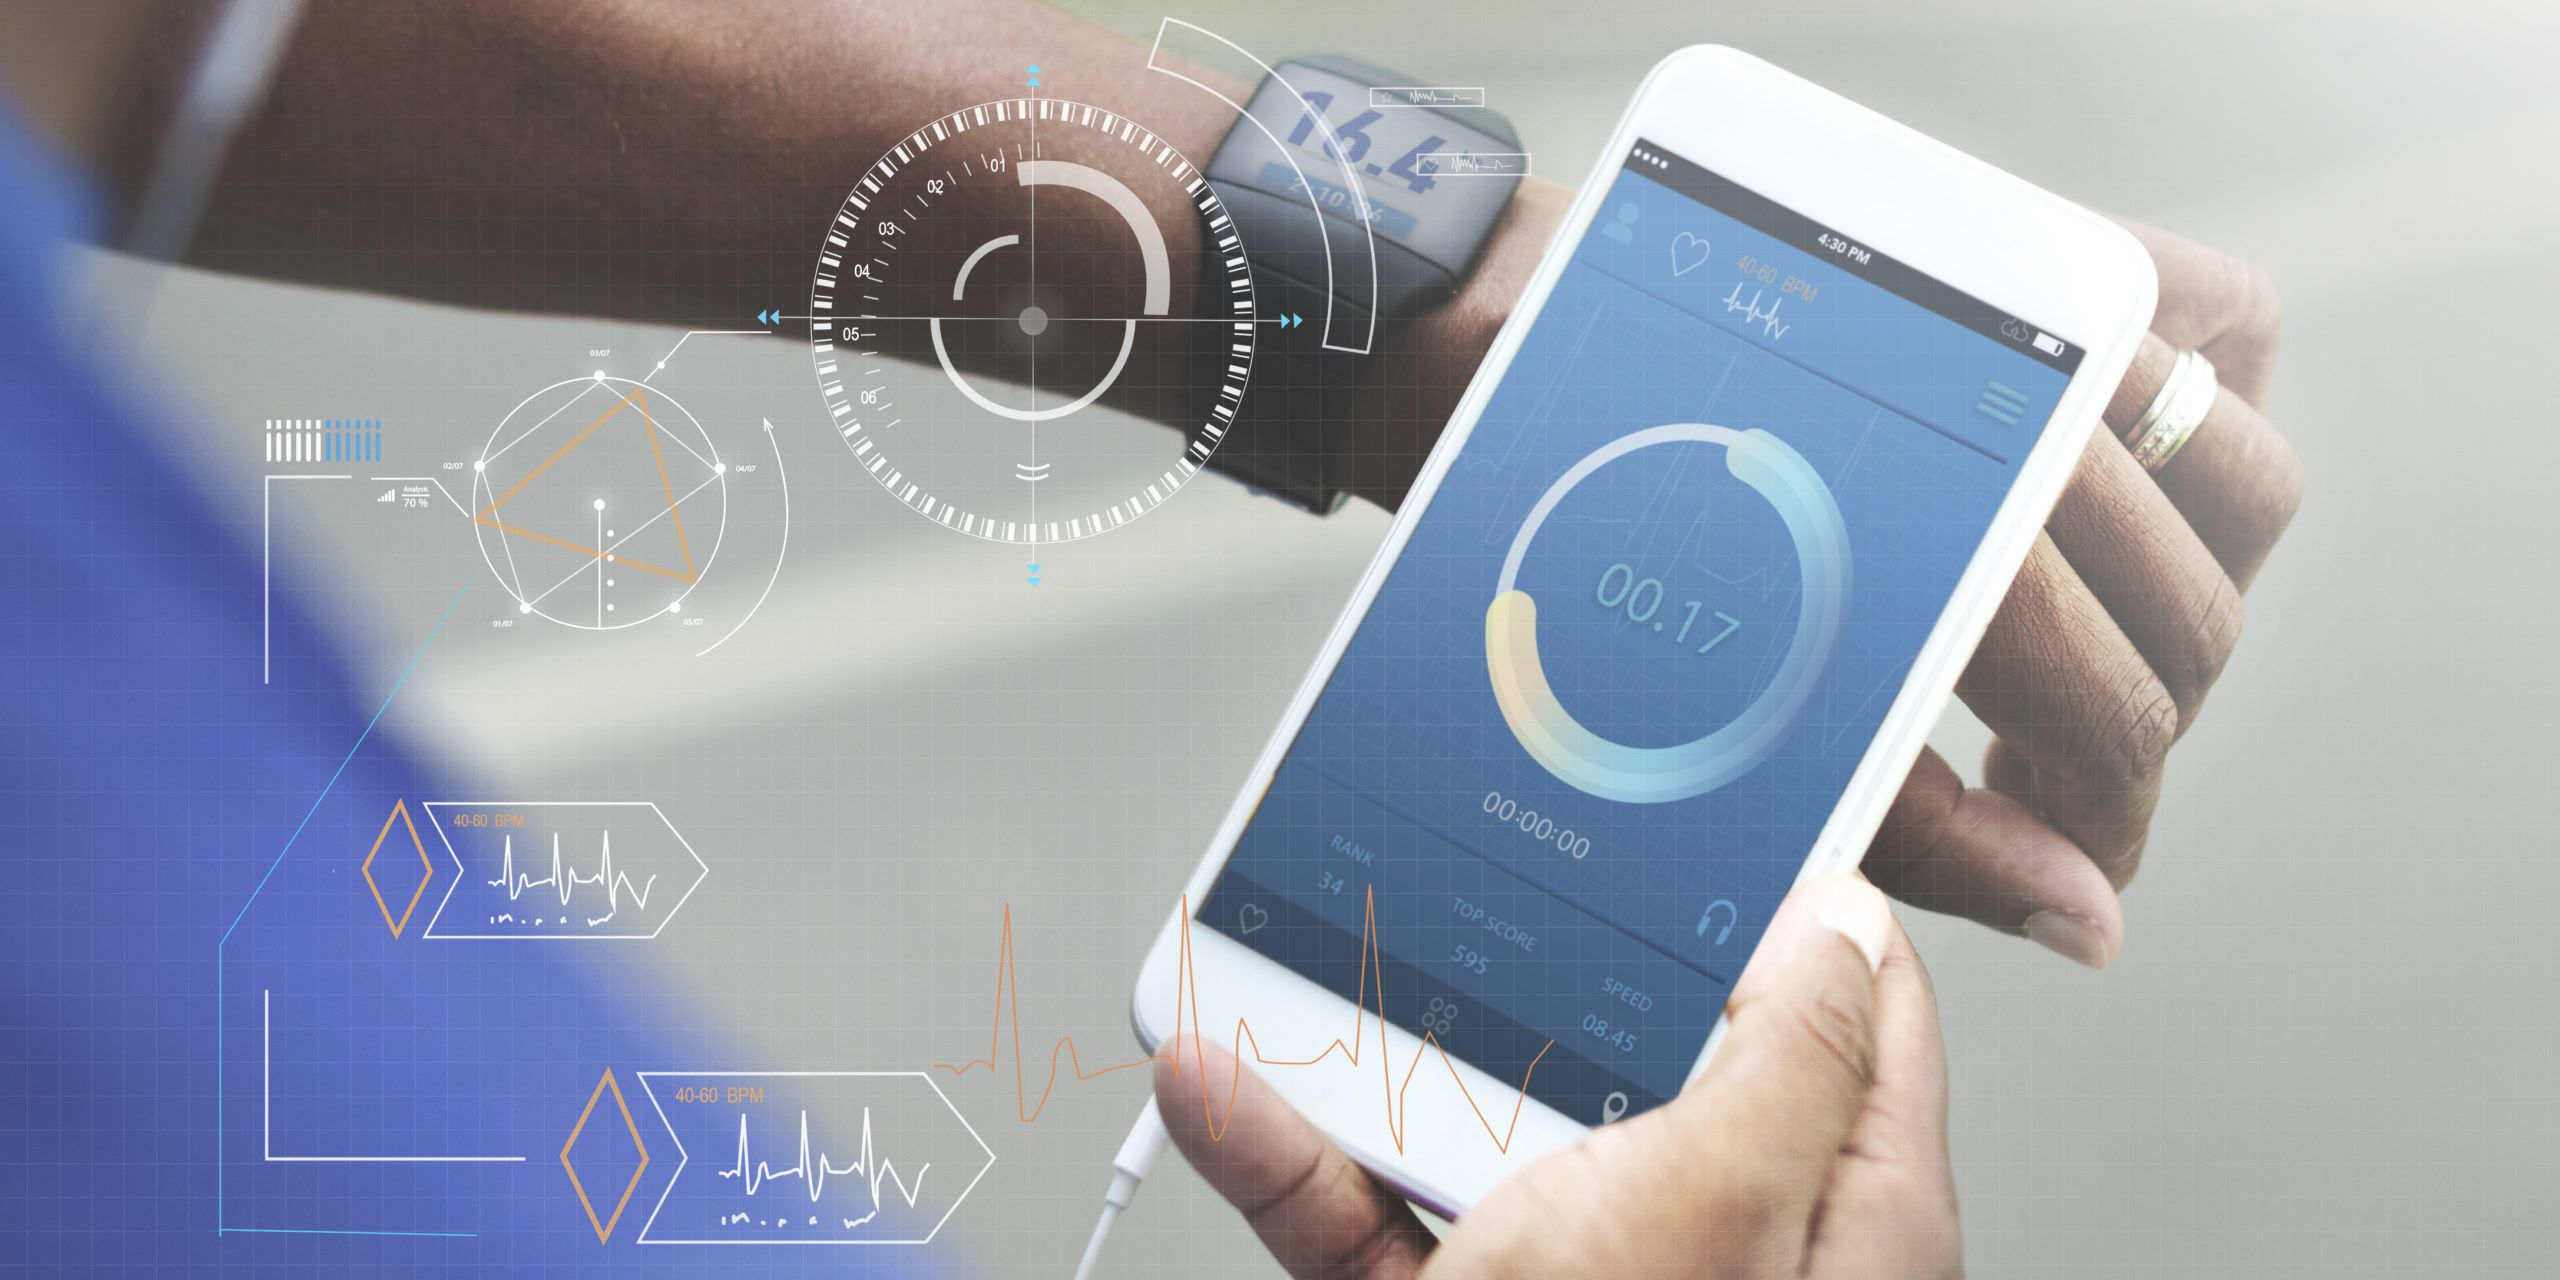 Fitness tech healthcare sensors and tracking